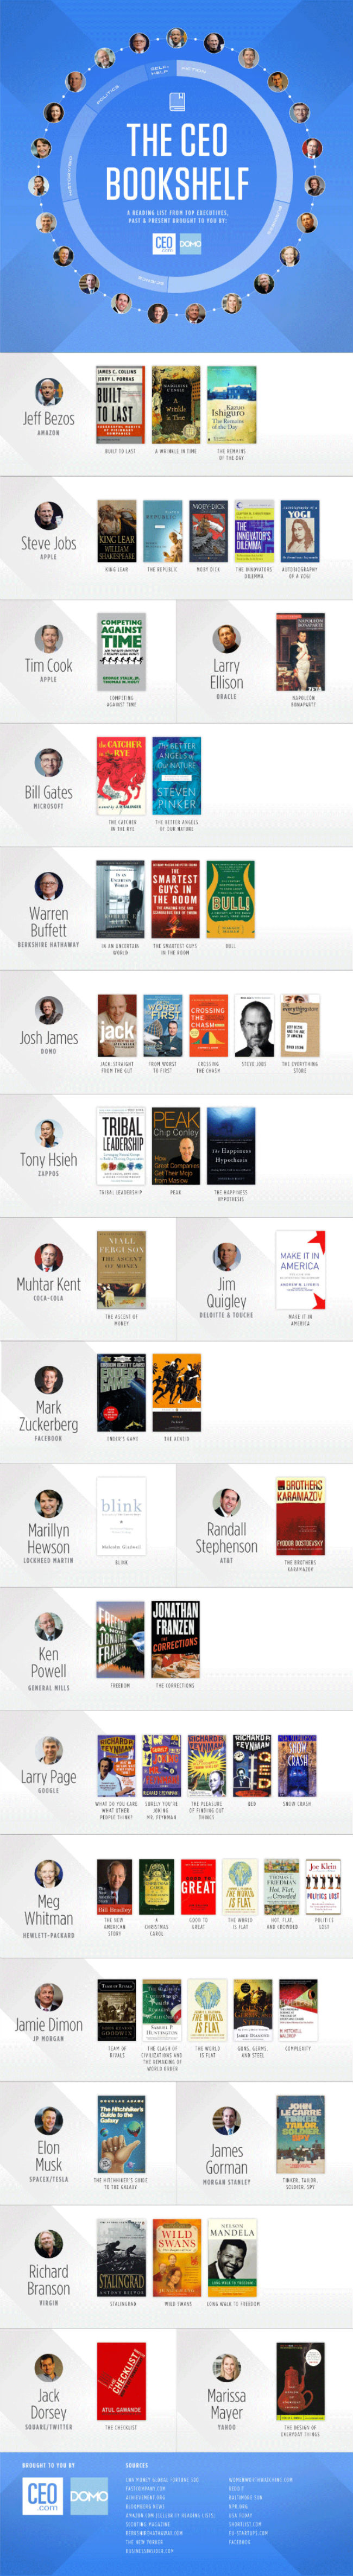 The CEO Bookself - What do CEOs read?